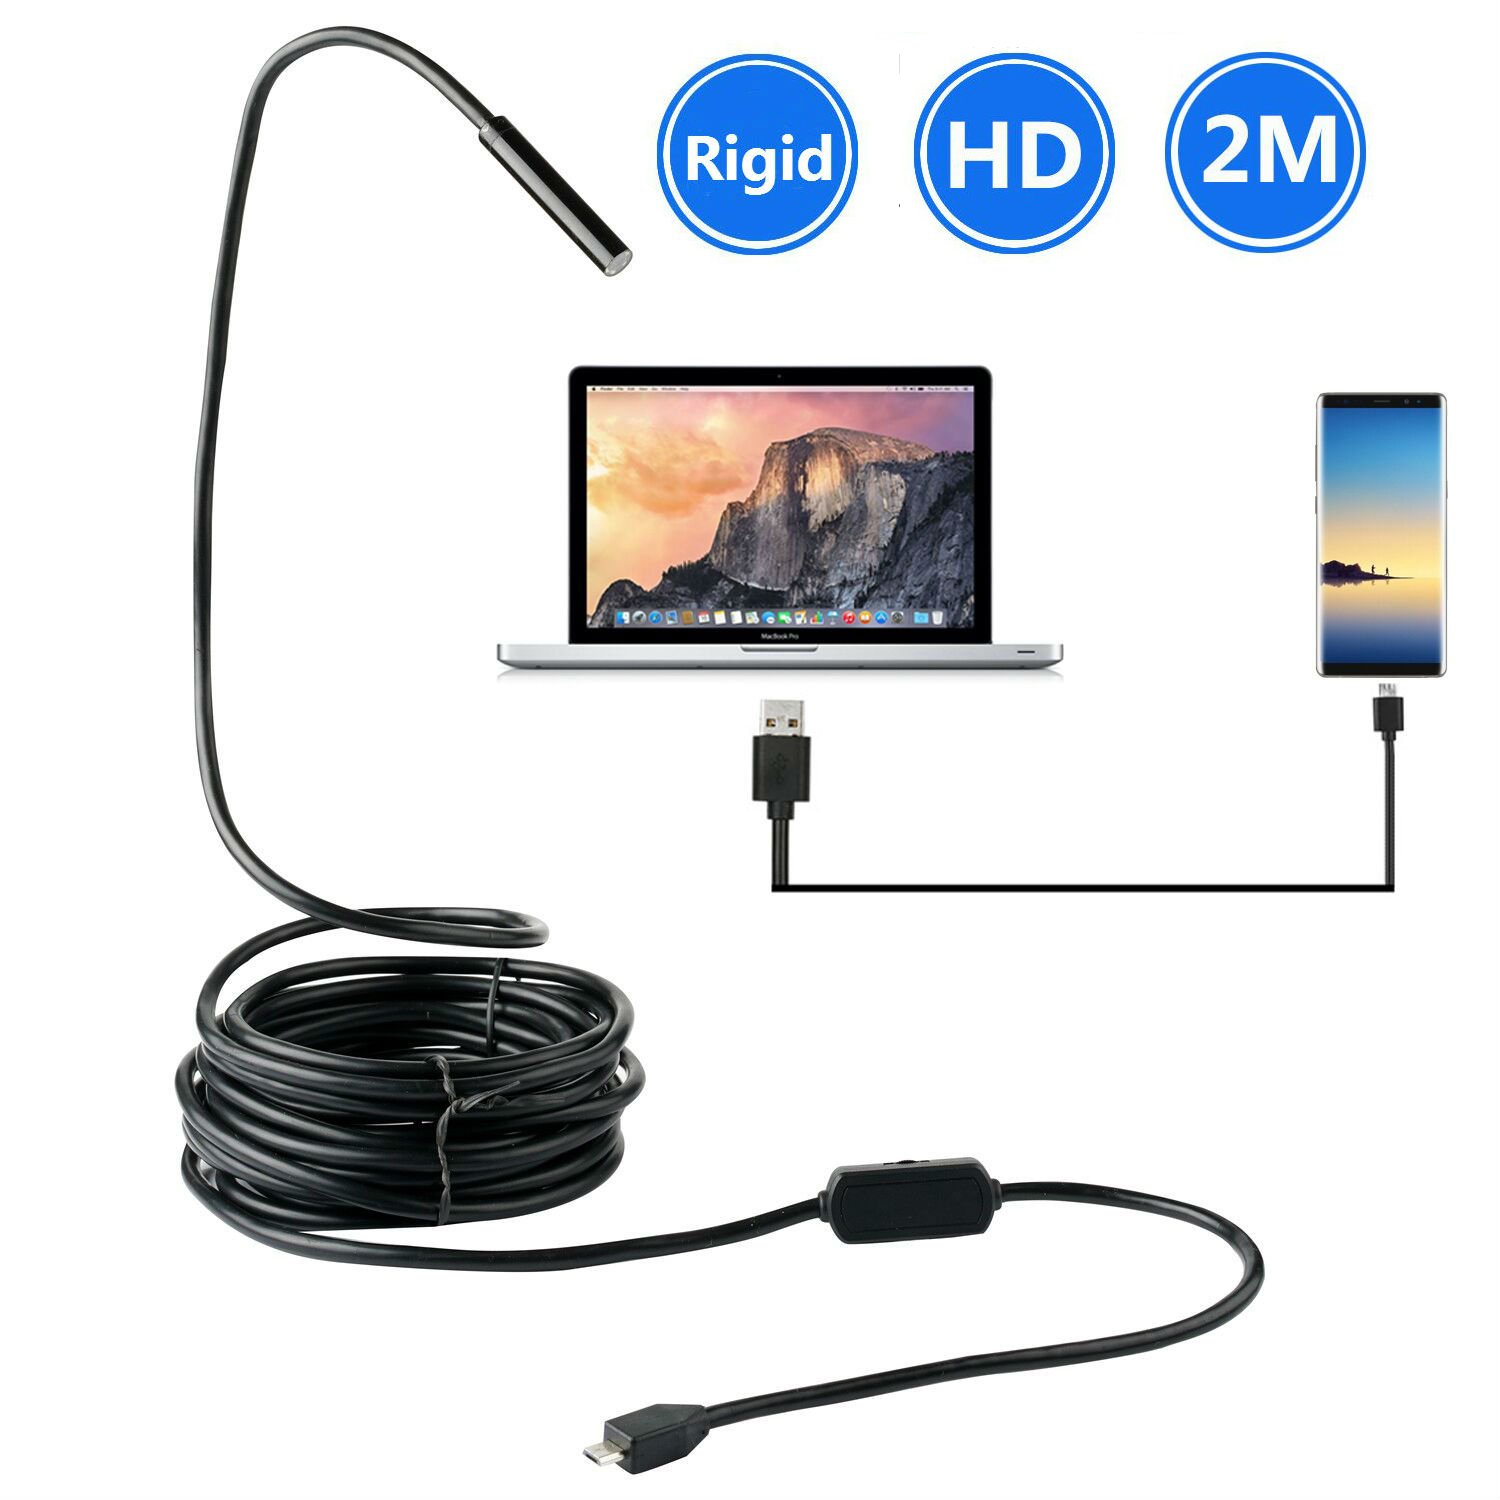 BlueFire Android USB Endoscope, Upgrade Rigid Borescope Inspection Camera 2.0 Megapixels CMOS HD Waterproof Snake Camera with 6 Adjustable Led Lights for Samsung S4/S5/S6/S7 Sony(6.6FT) ZN75-BF-UK-123